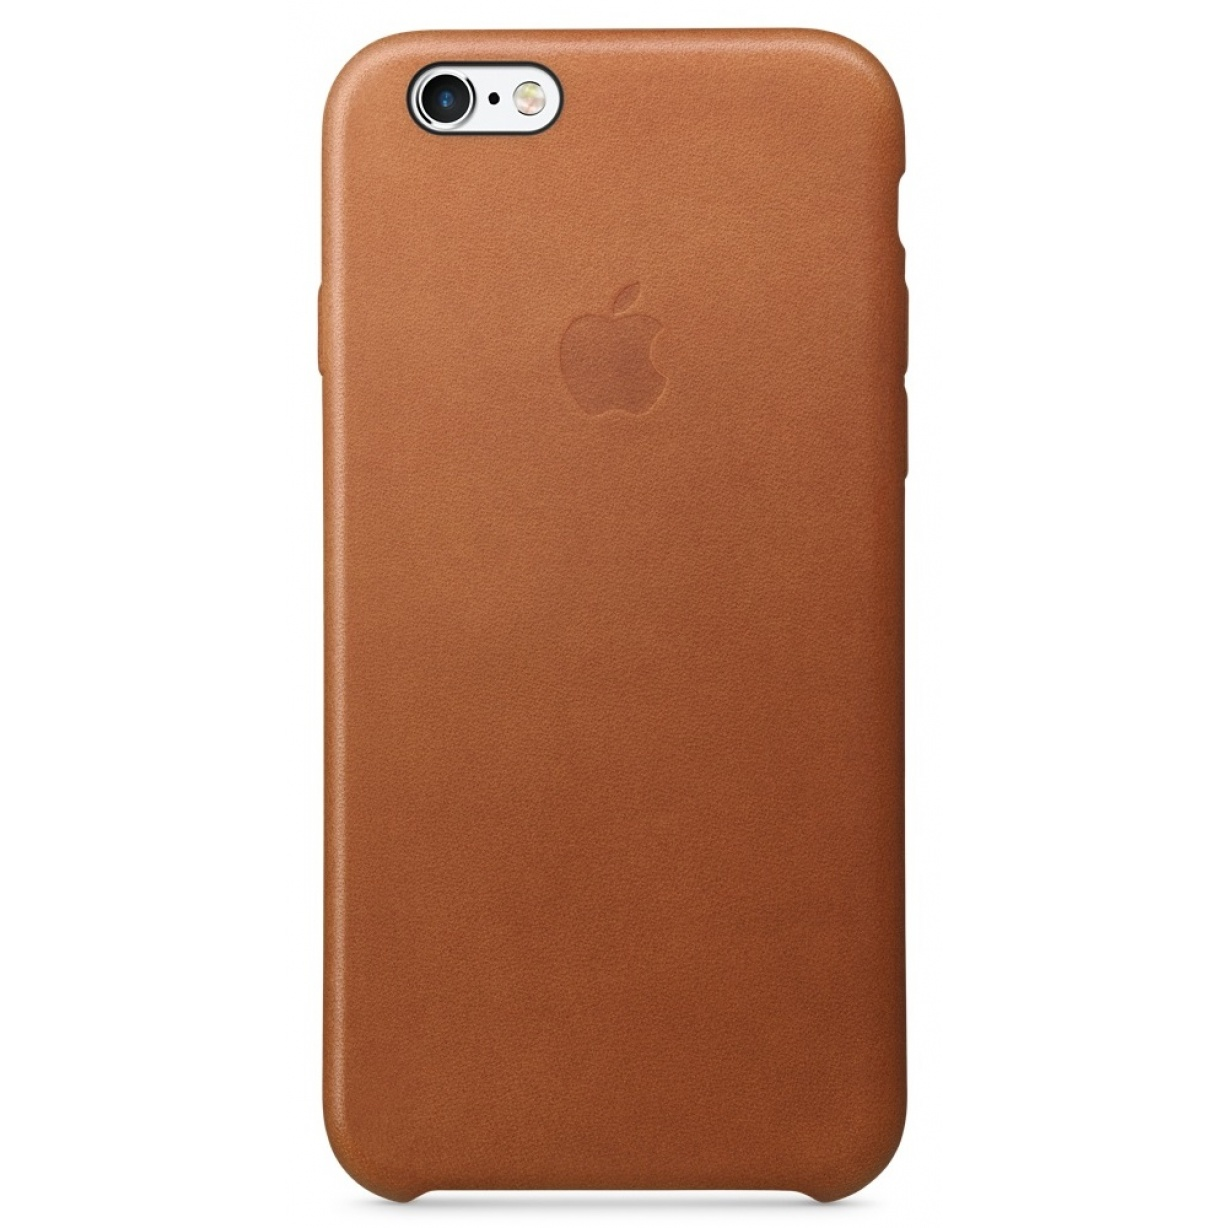 Nugarėlė Apple iPhone 6/6s Leather Case Saddle Brown